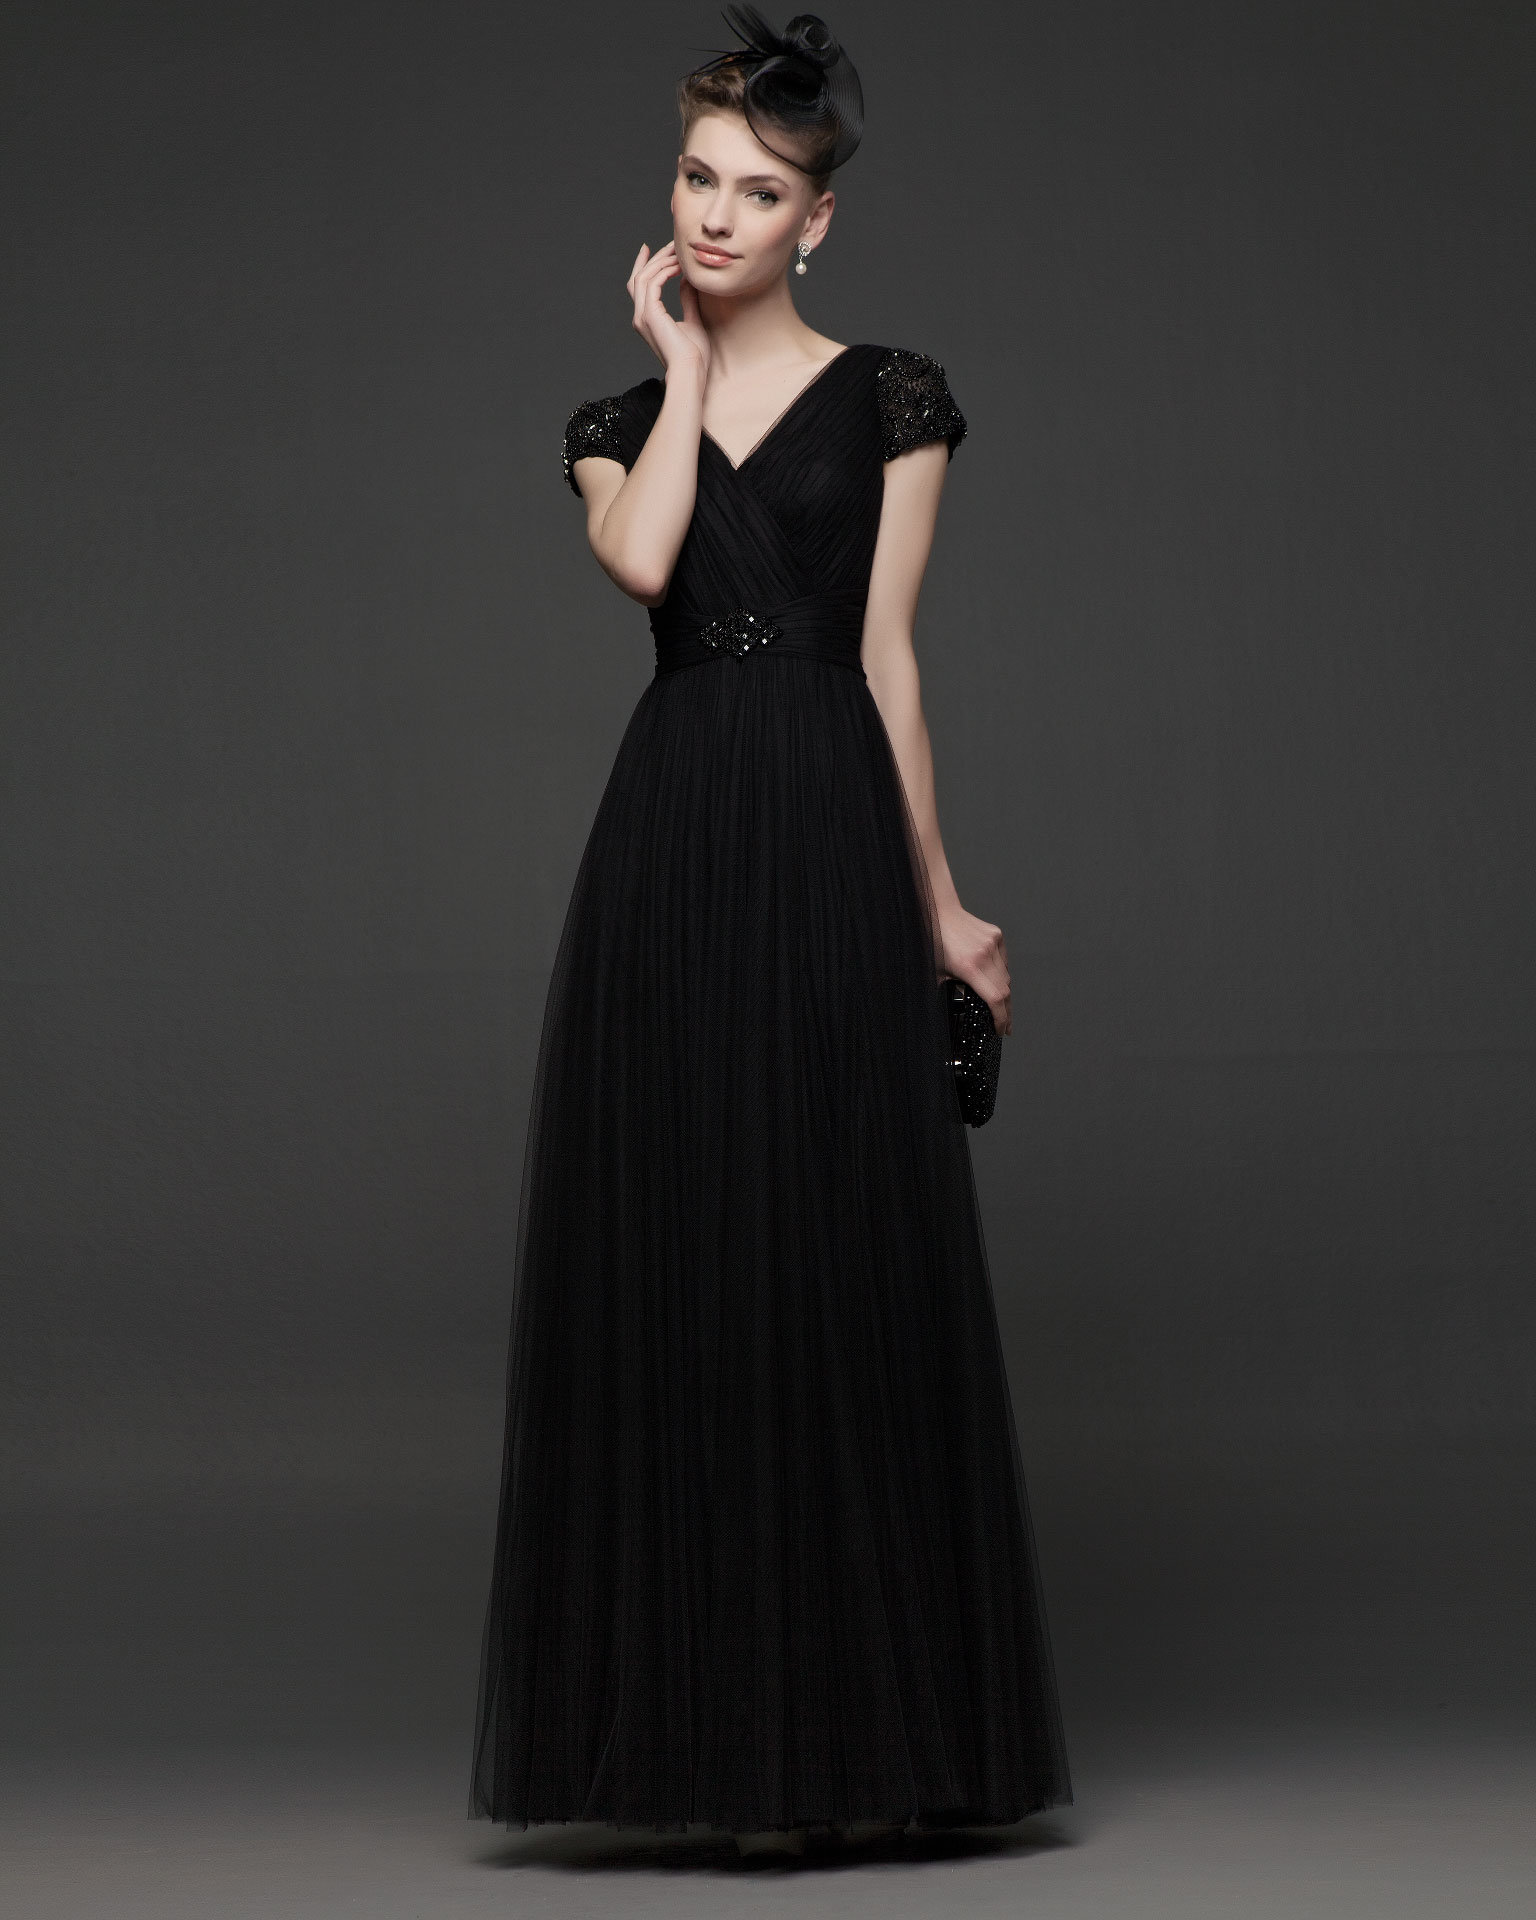 Download image Simple Long Black Dress PC, Android, iPhone and iPad ...